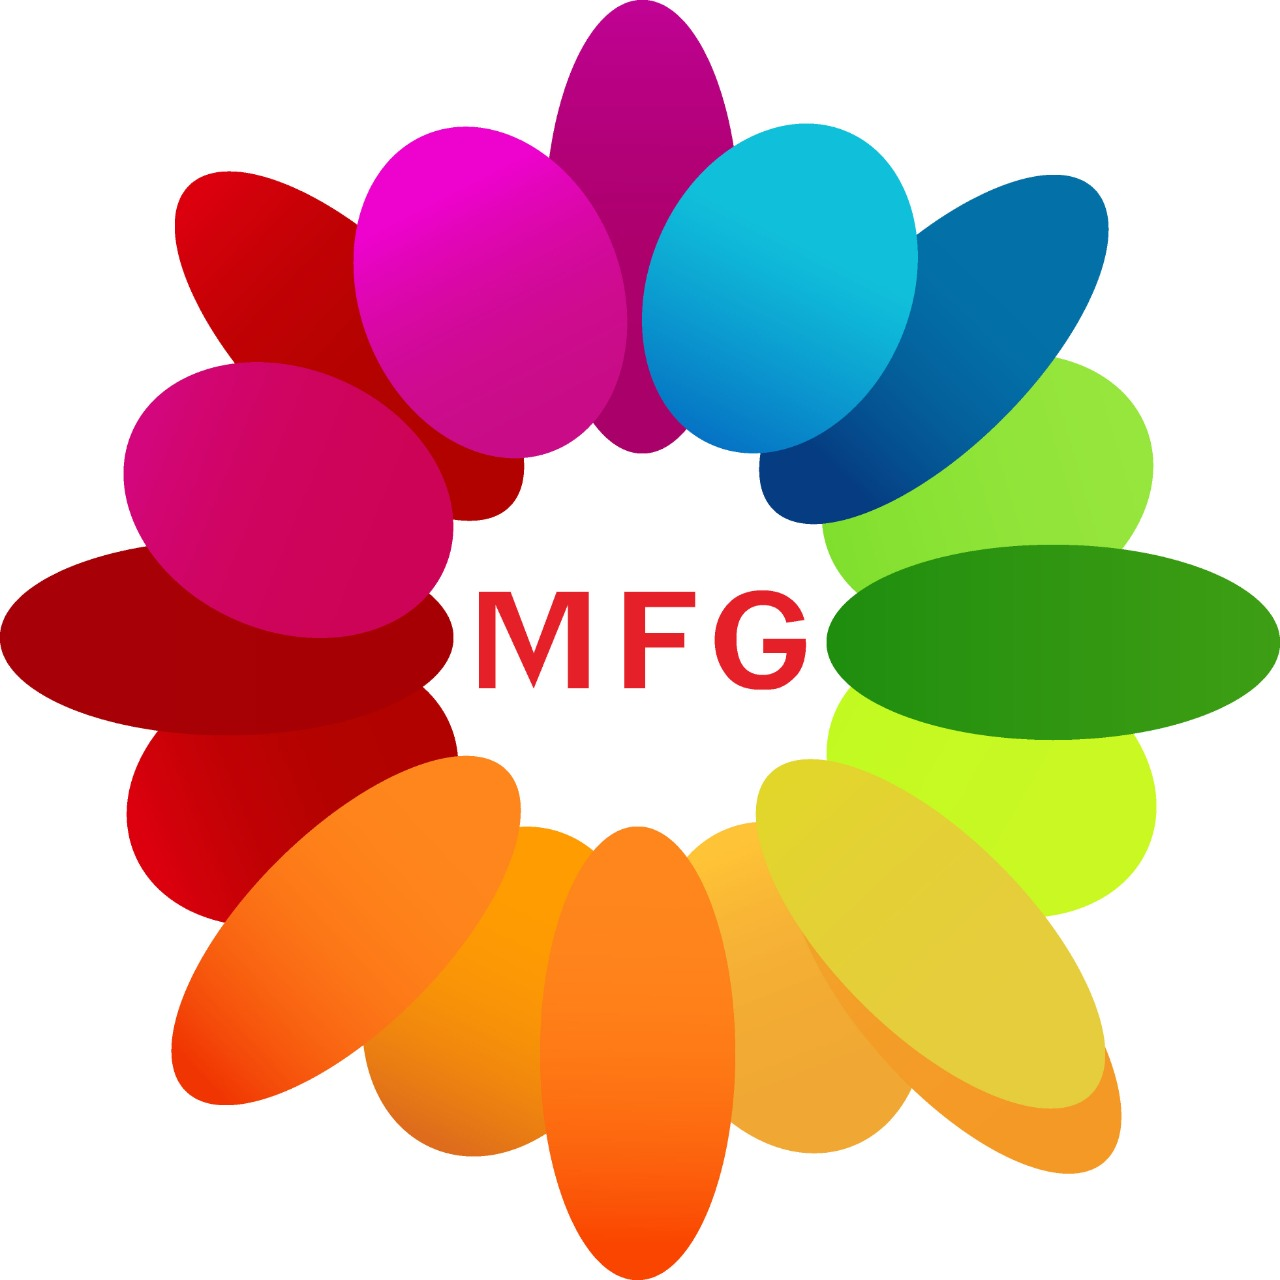 hand bouquet of 10 red roses with 3 white lilies